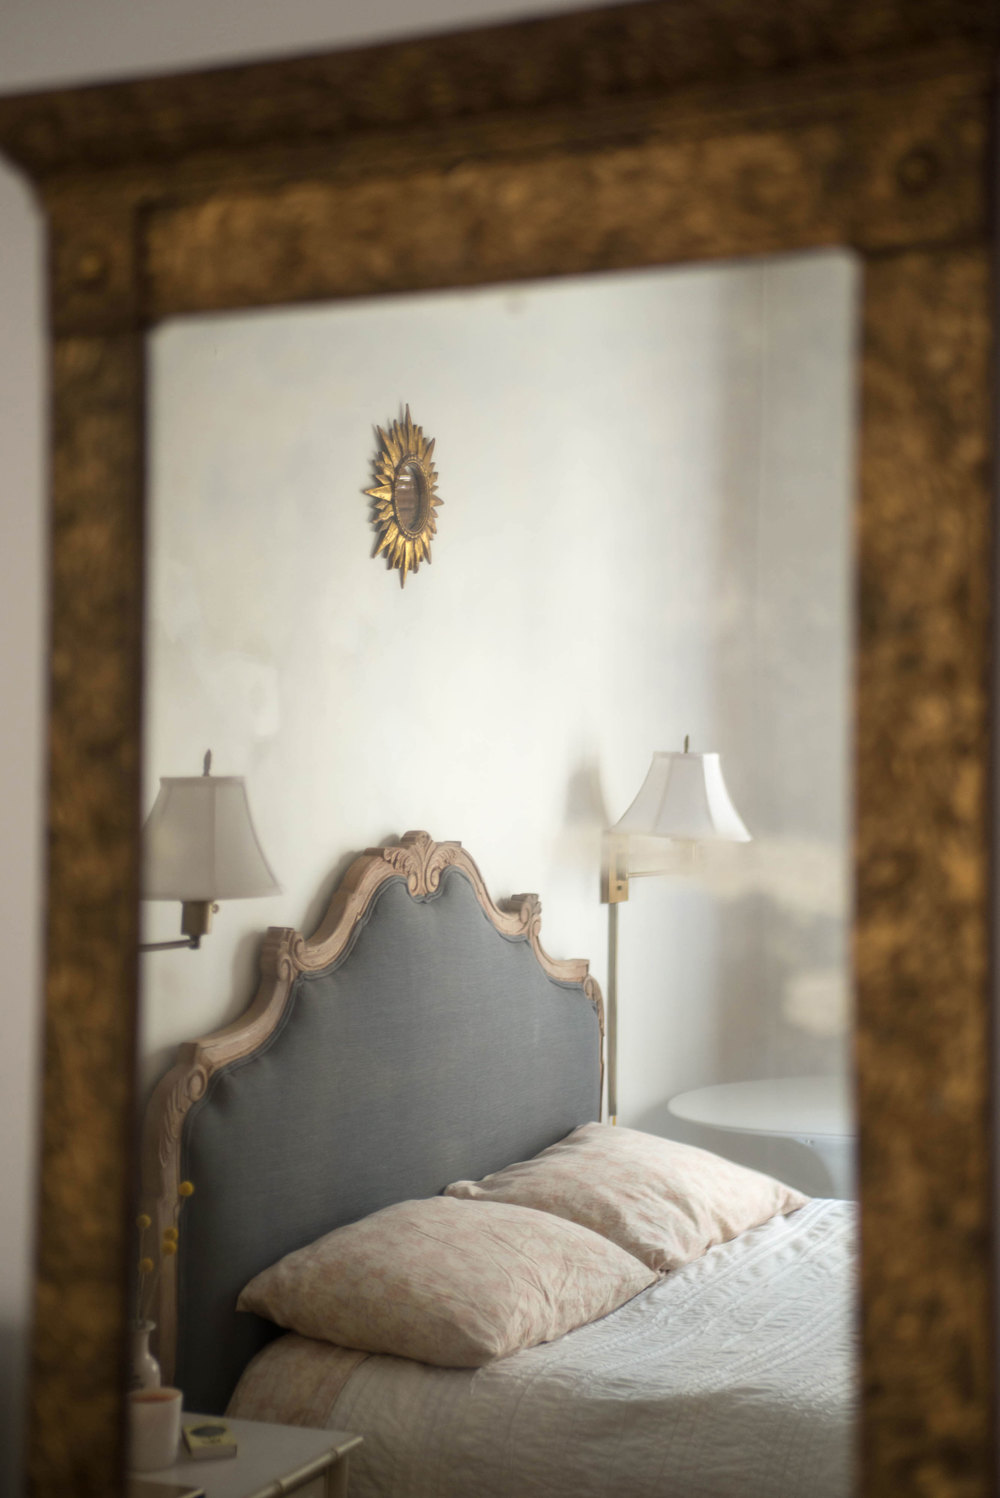 A view of the bed through the mirror I have hung over my dresser | Photograph by: Lauren L Caron © 2016